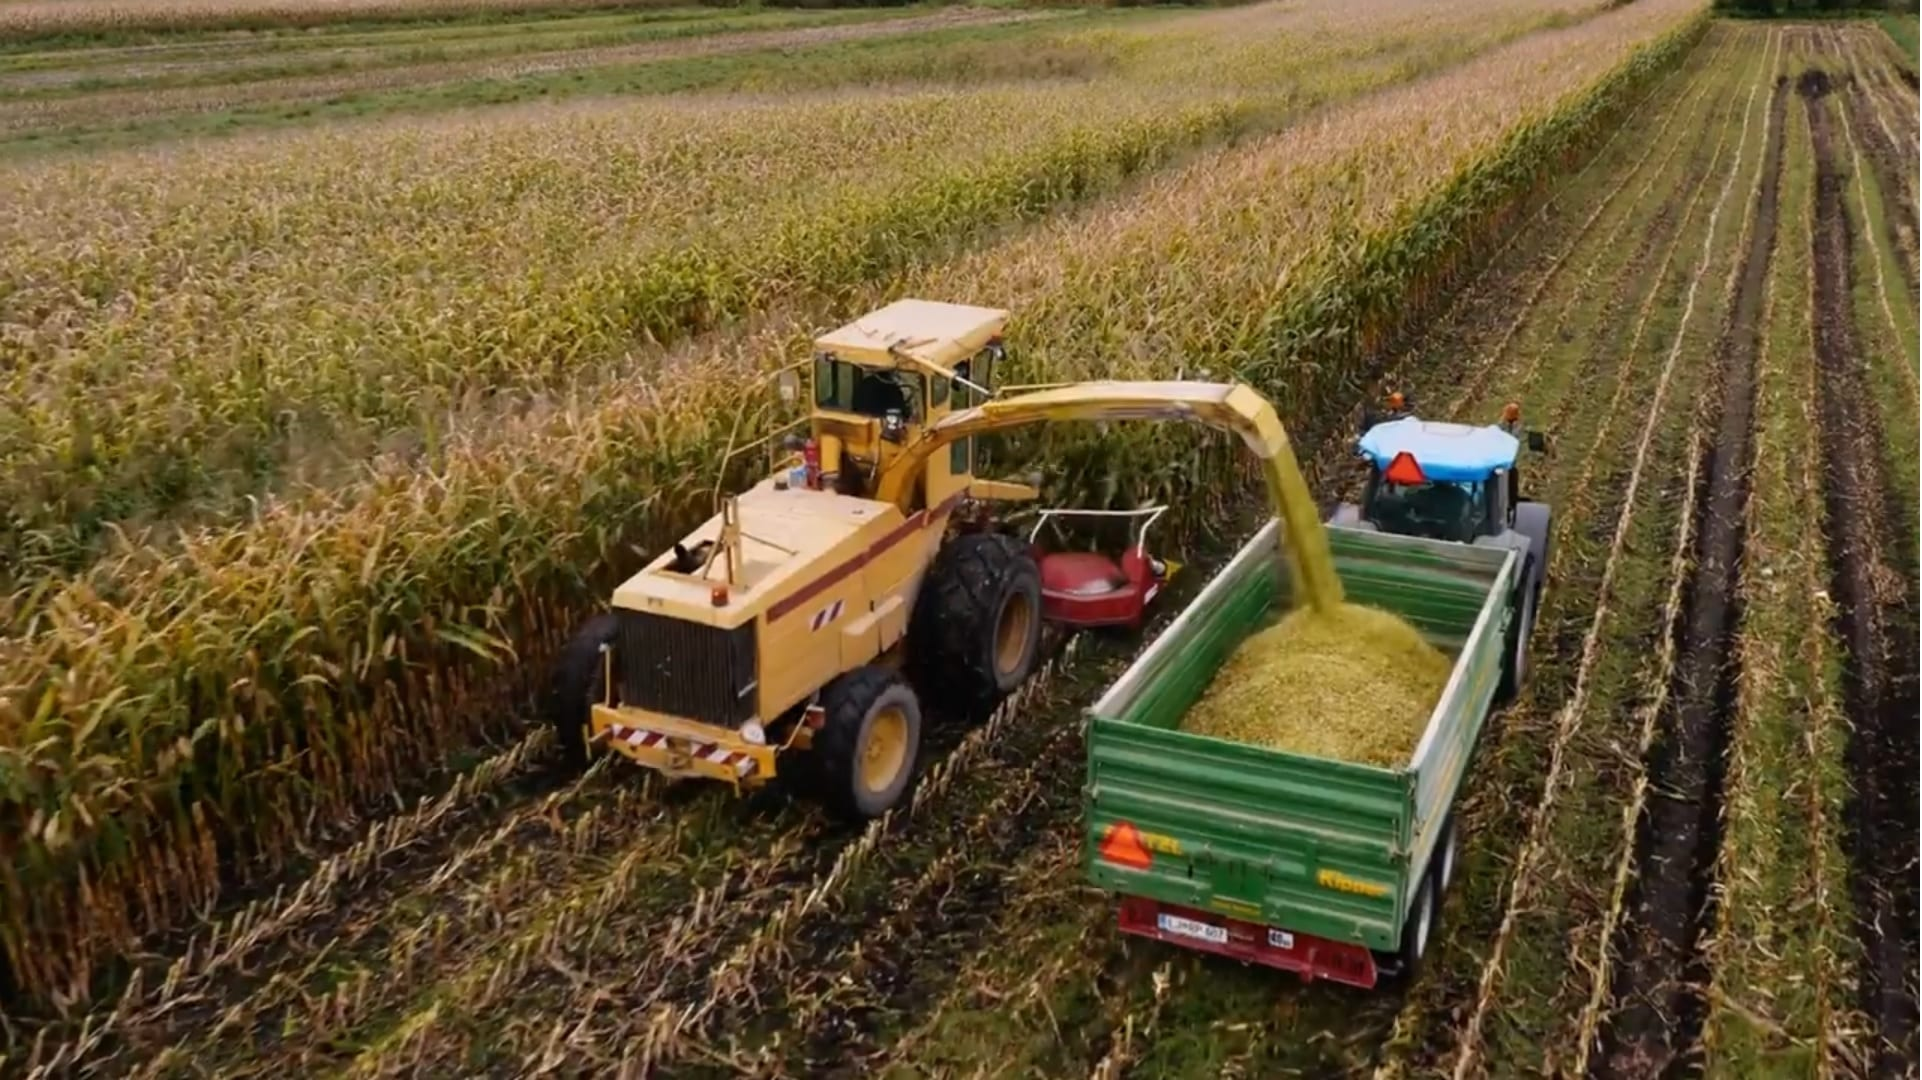 Large vehicles harvesting corn in a field